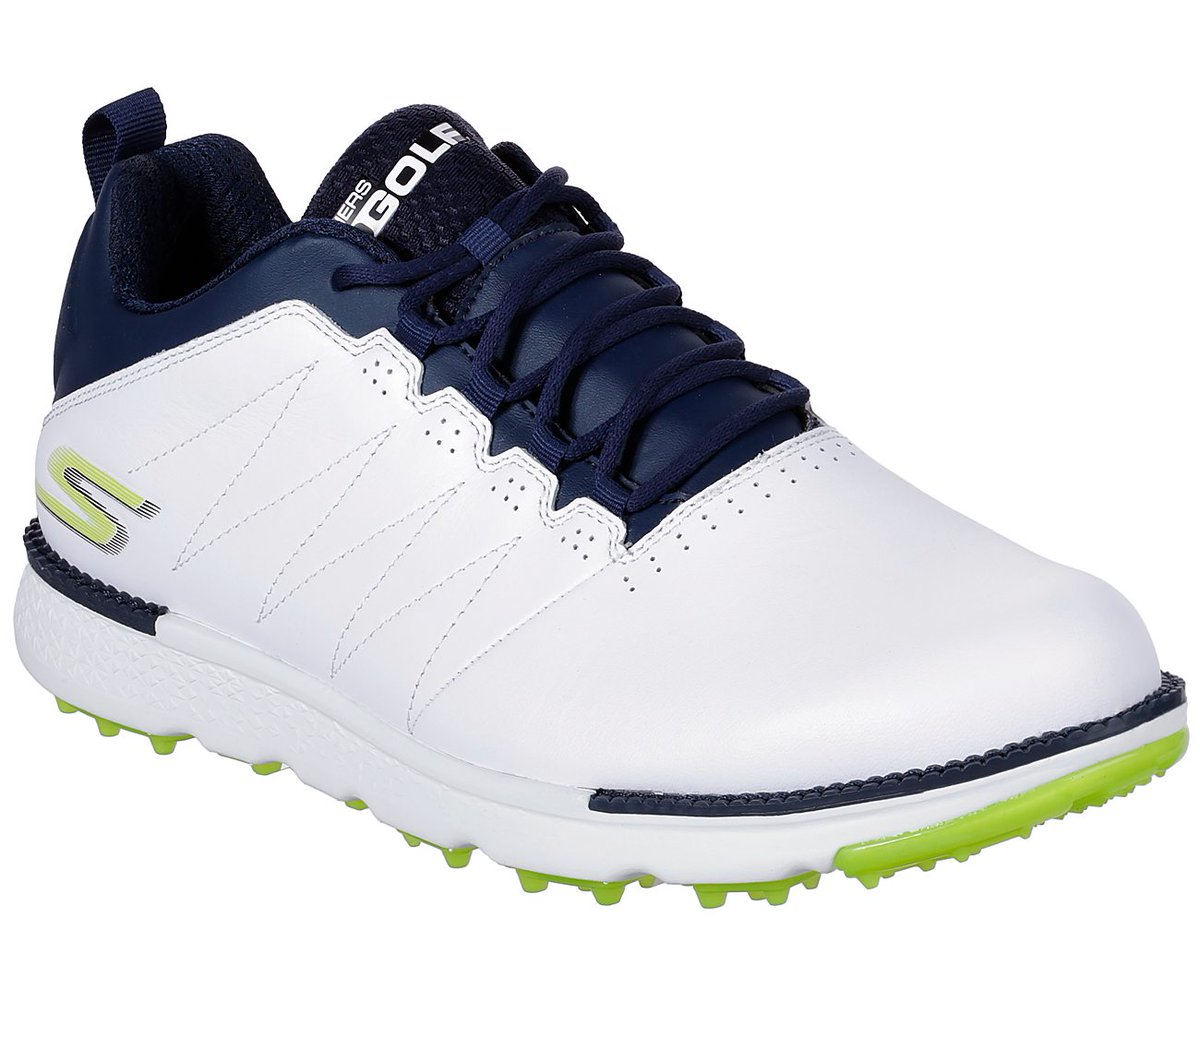 skechers shoes stockists